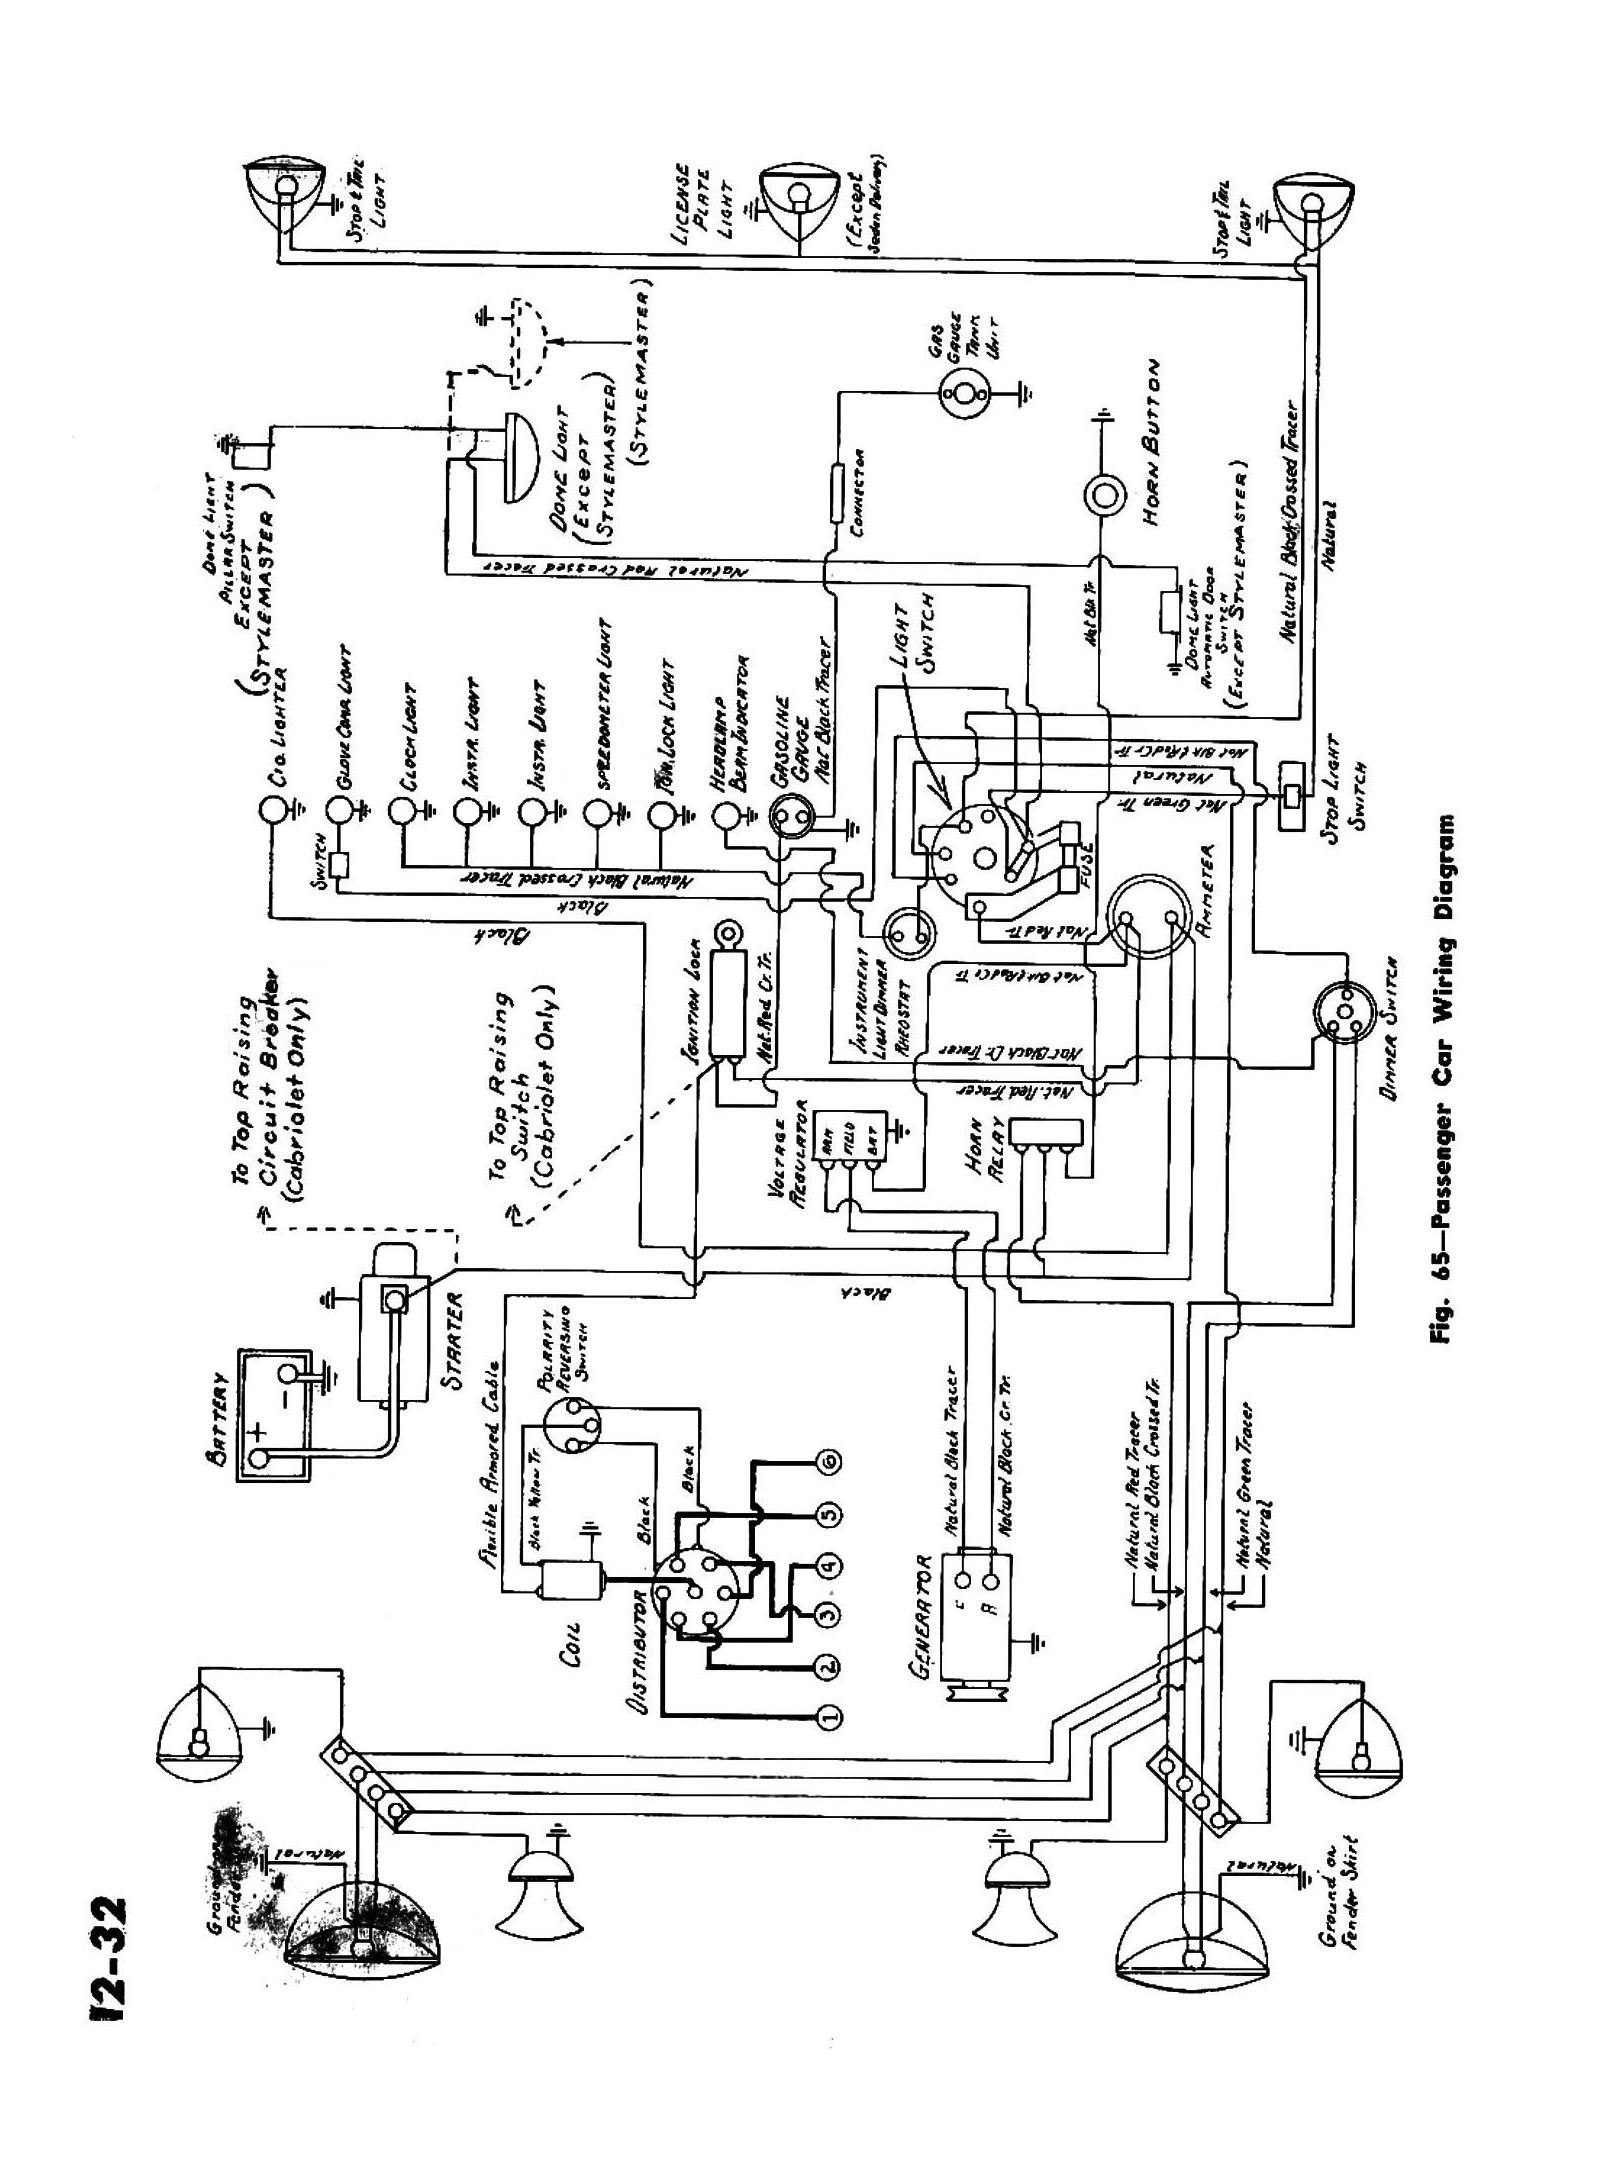 Chevy Wiring Diagrams Diagram In Addition 3 Wire Condenser Fan Motor 1945 Passenger Car